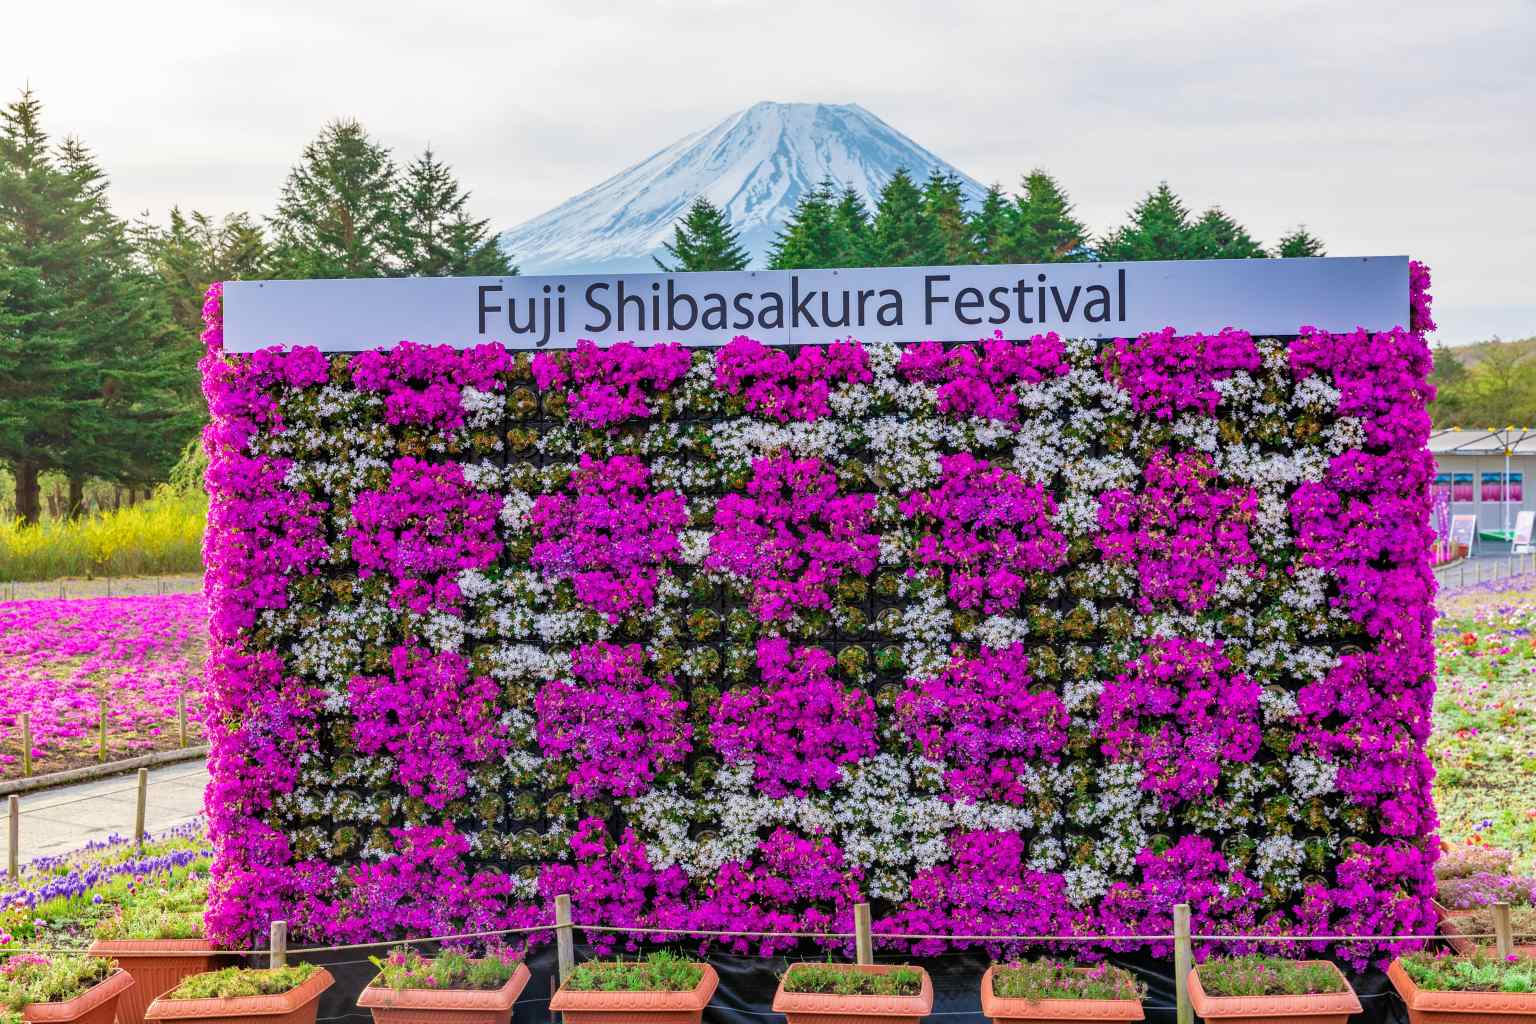 Mt-Fuji-Shibazakura-sakura-festival-2021-photos-Japanese-news-Japan-17.jpg